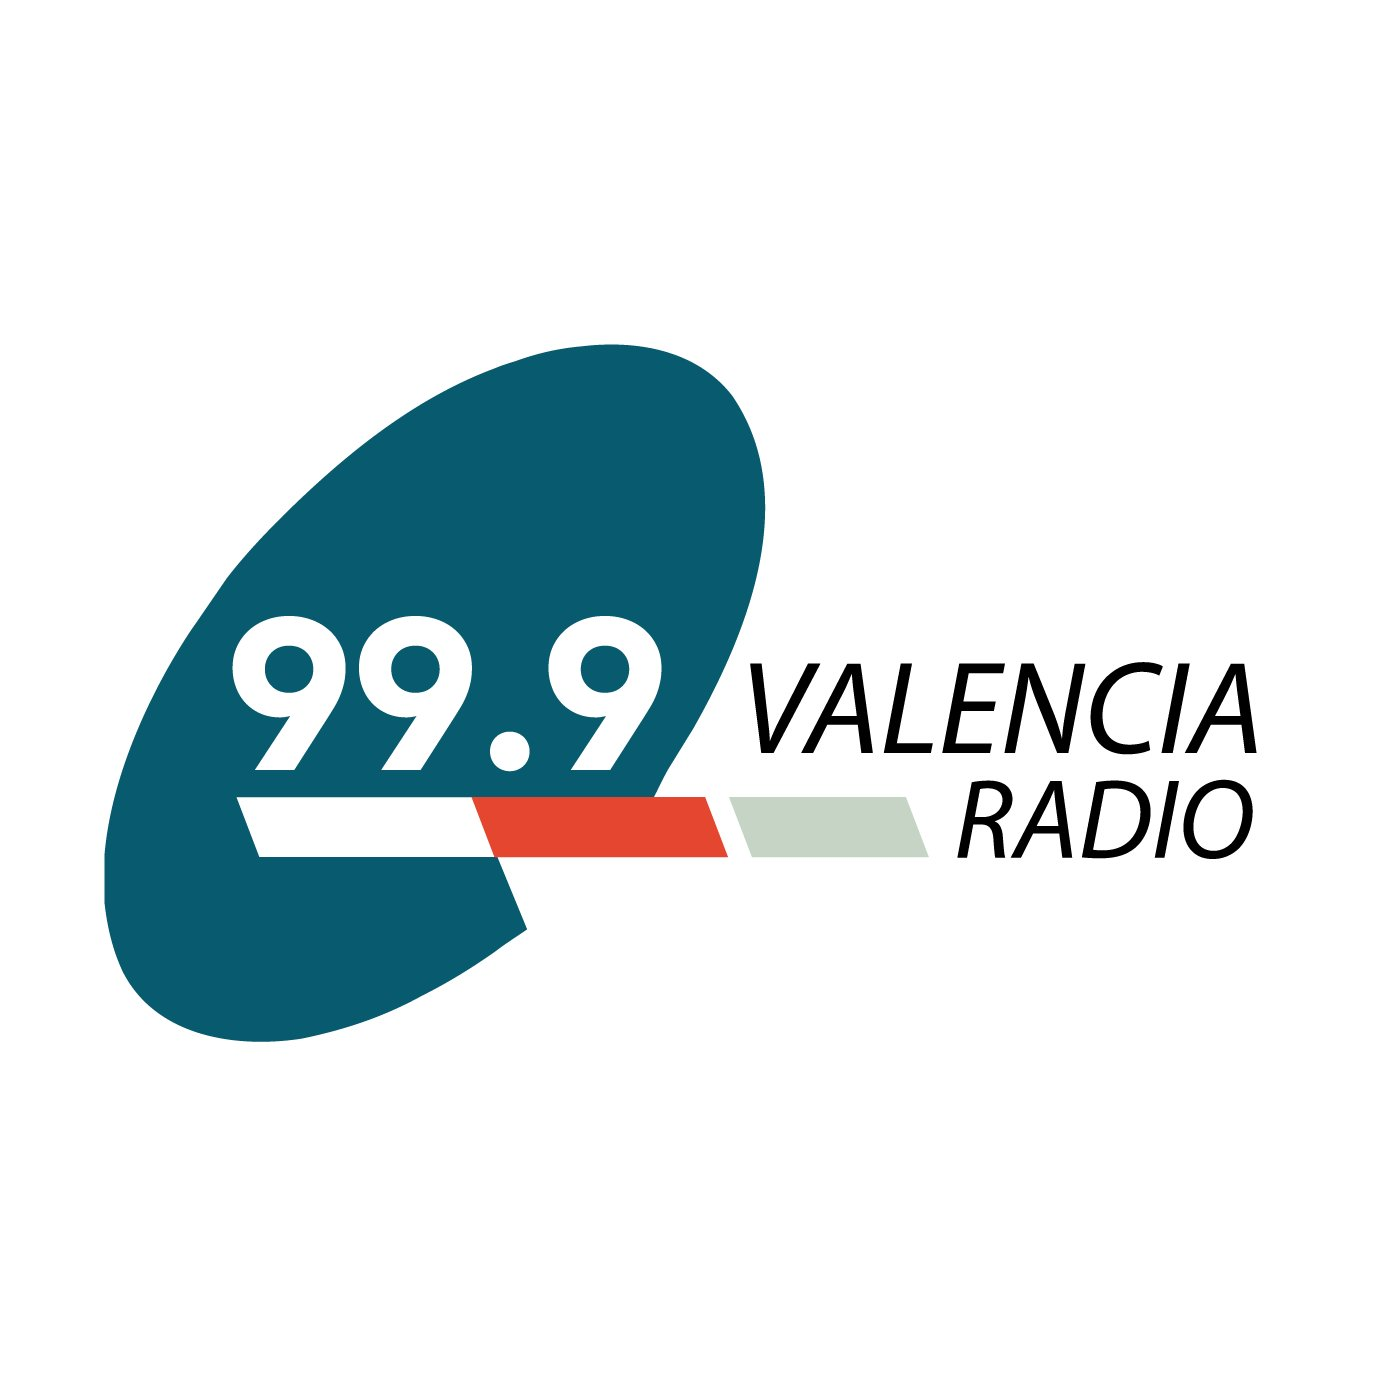 Logo de Audioseries 99.9